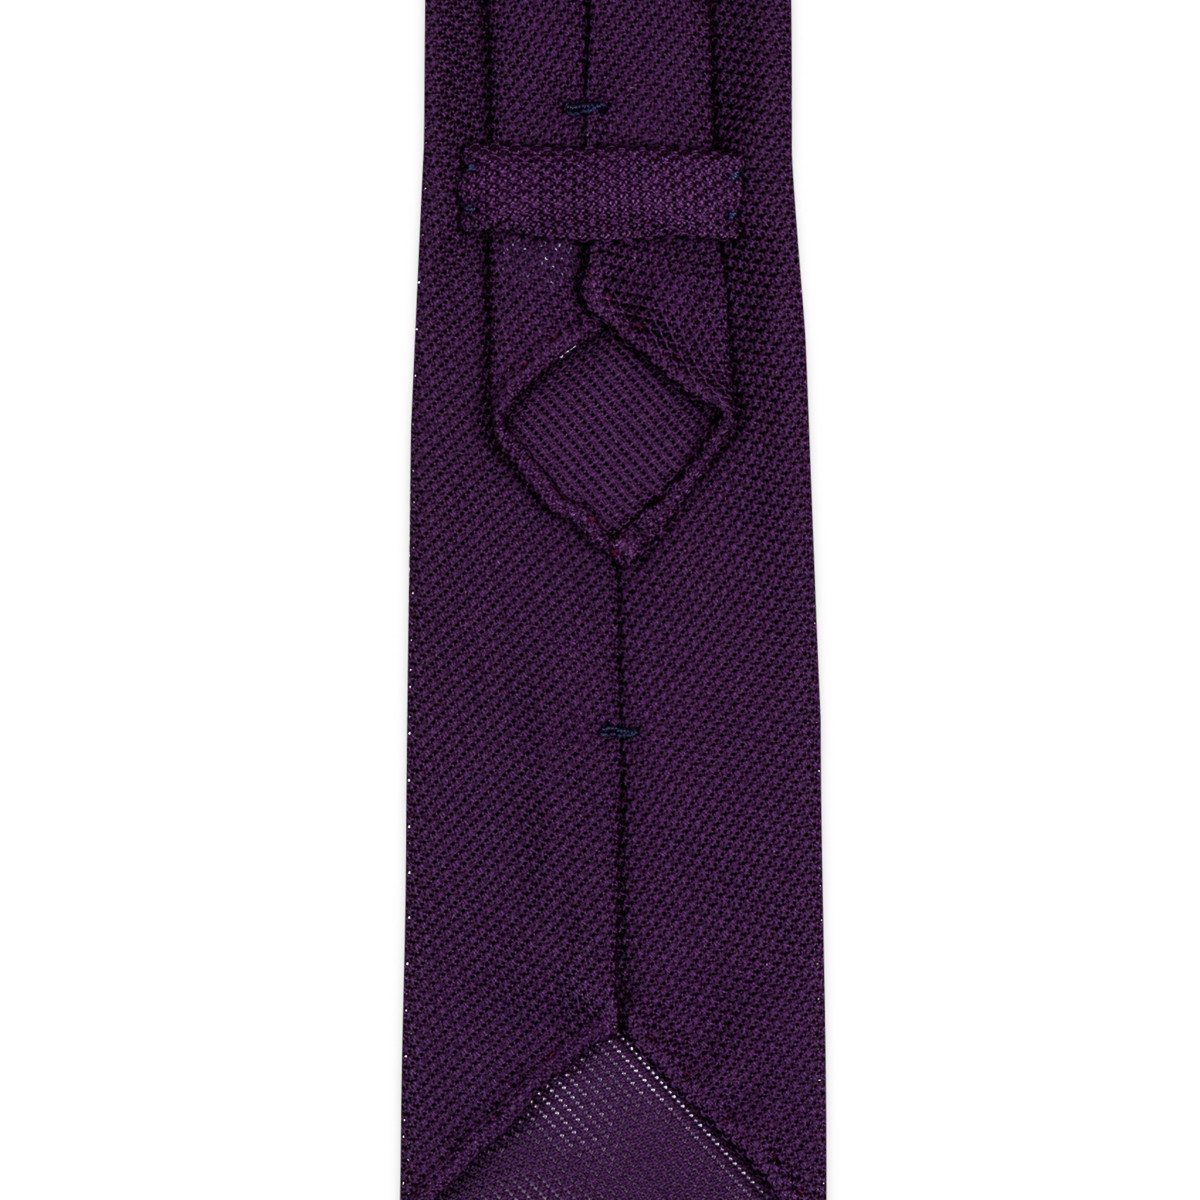 Paolo Albizzati - Das, Purple, Dassen | NEW TAILOR Webshop